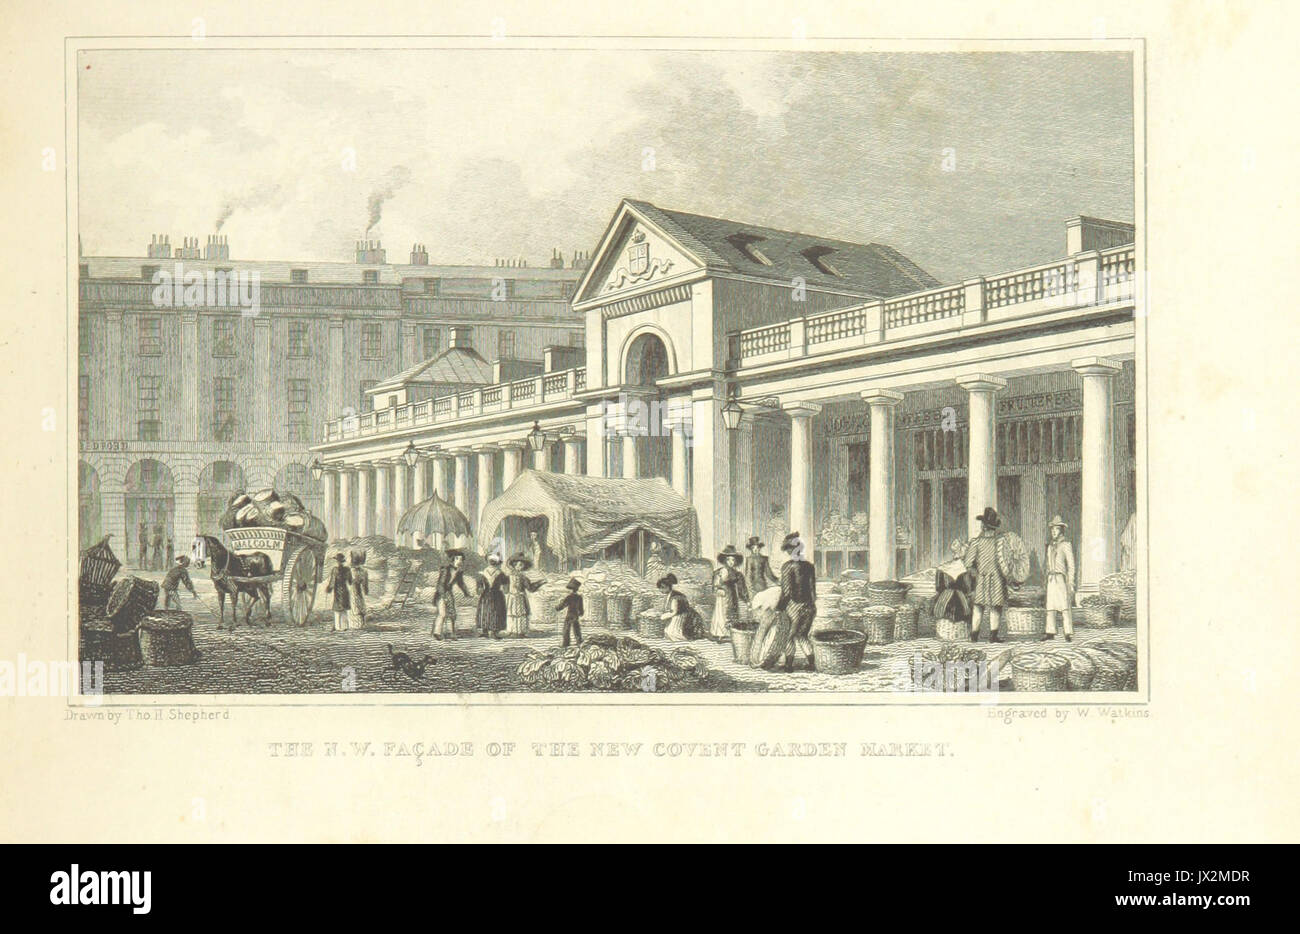 The NW Facade of the new Covent Garden Market   Shepherd, Metropolitan Improvements (1828), p203 - Stock Image